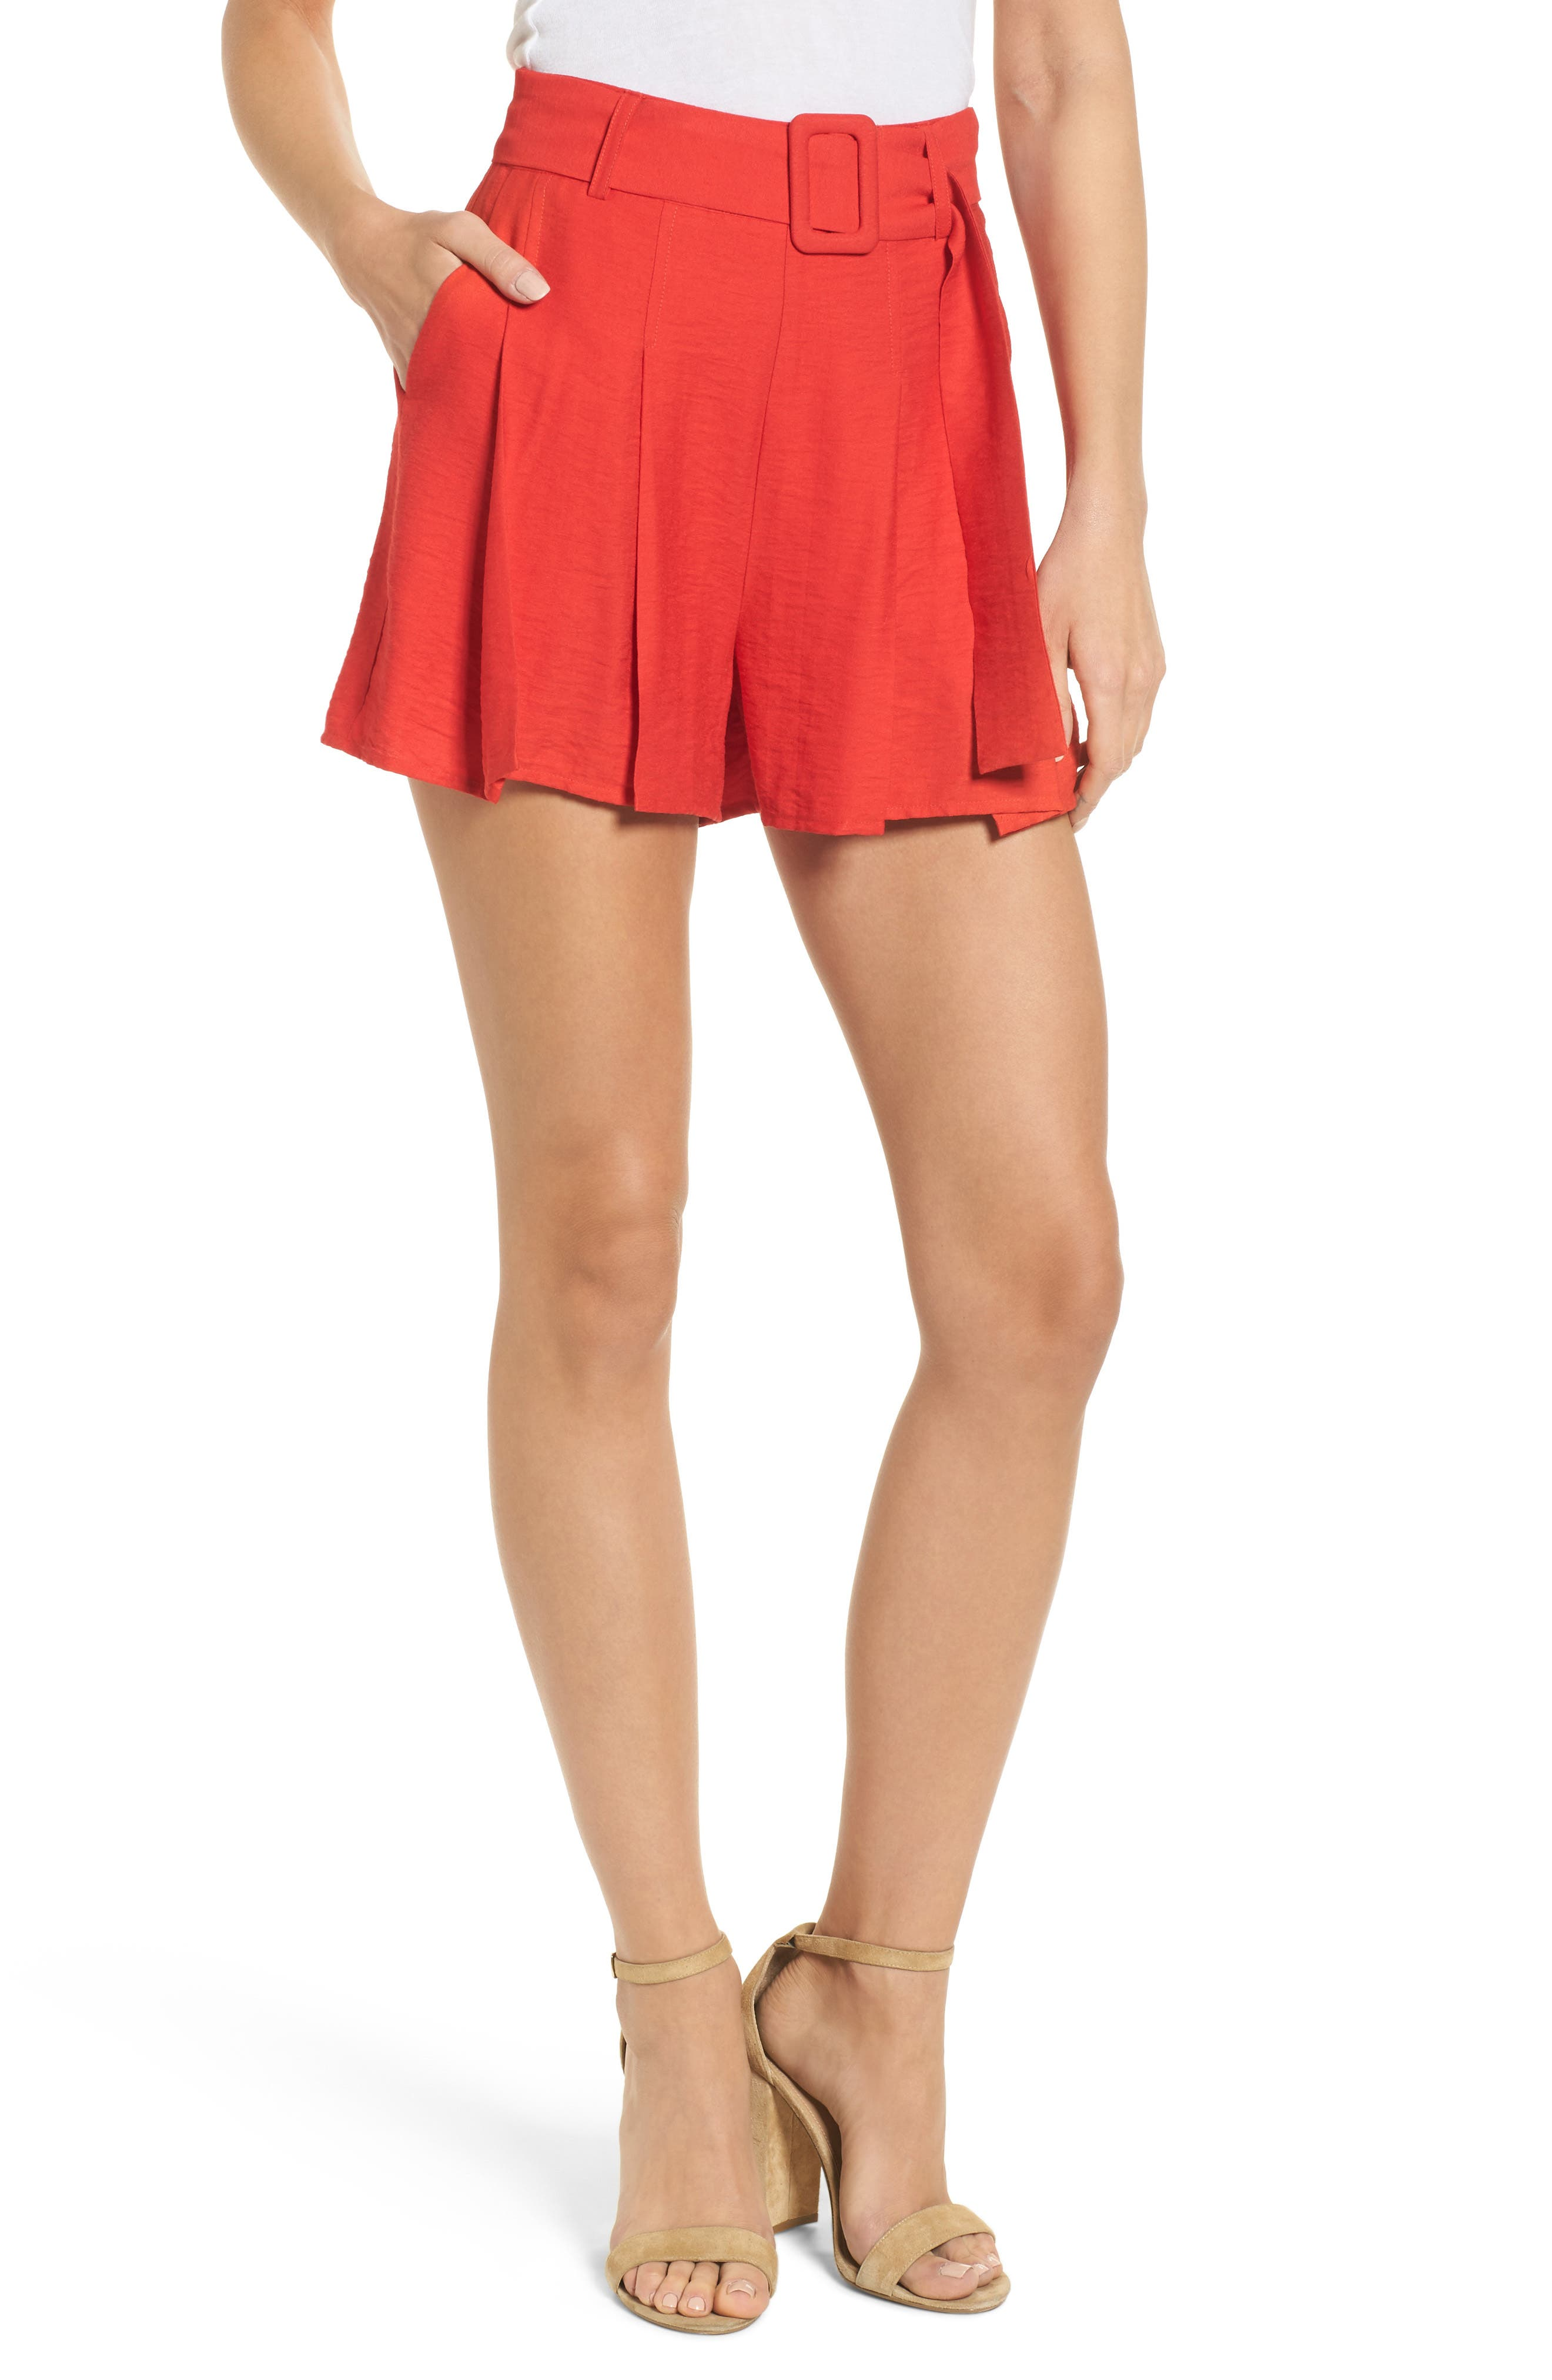 Alternate Image 1 Selected - Moon River Belted High Waist Shorts